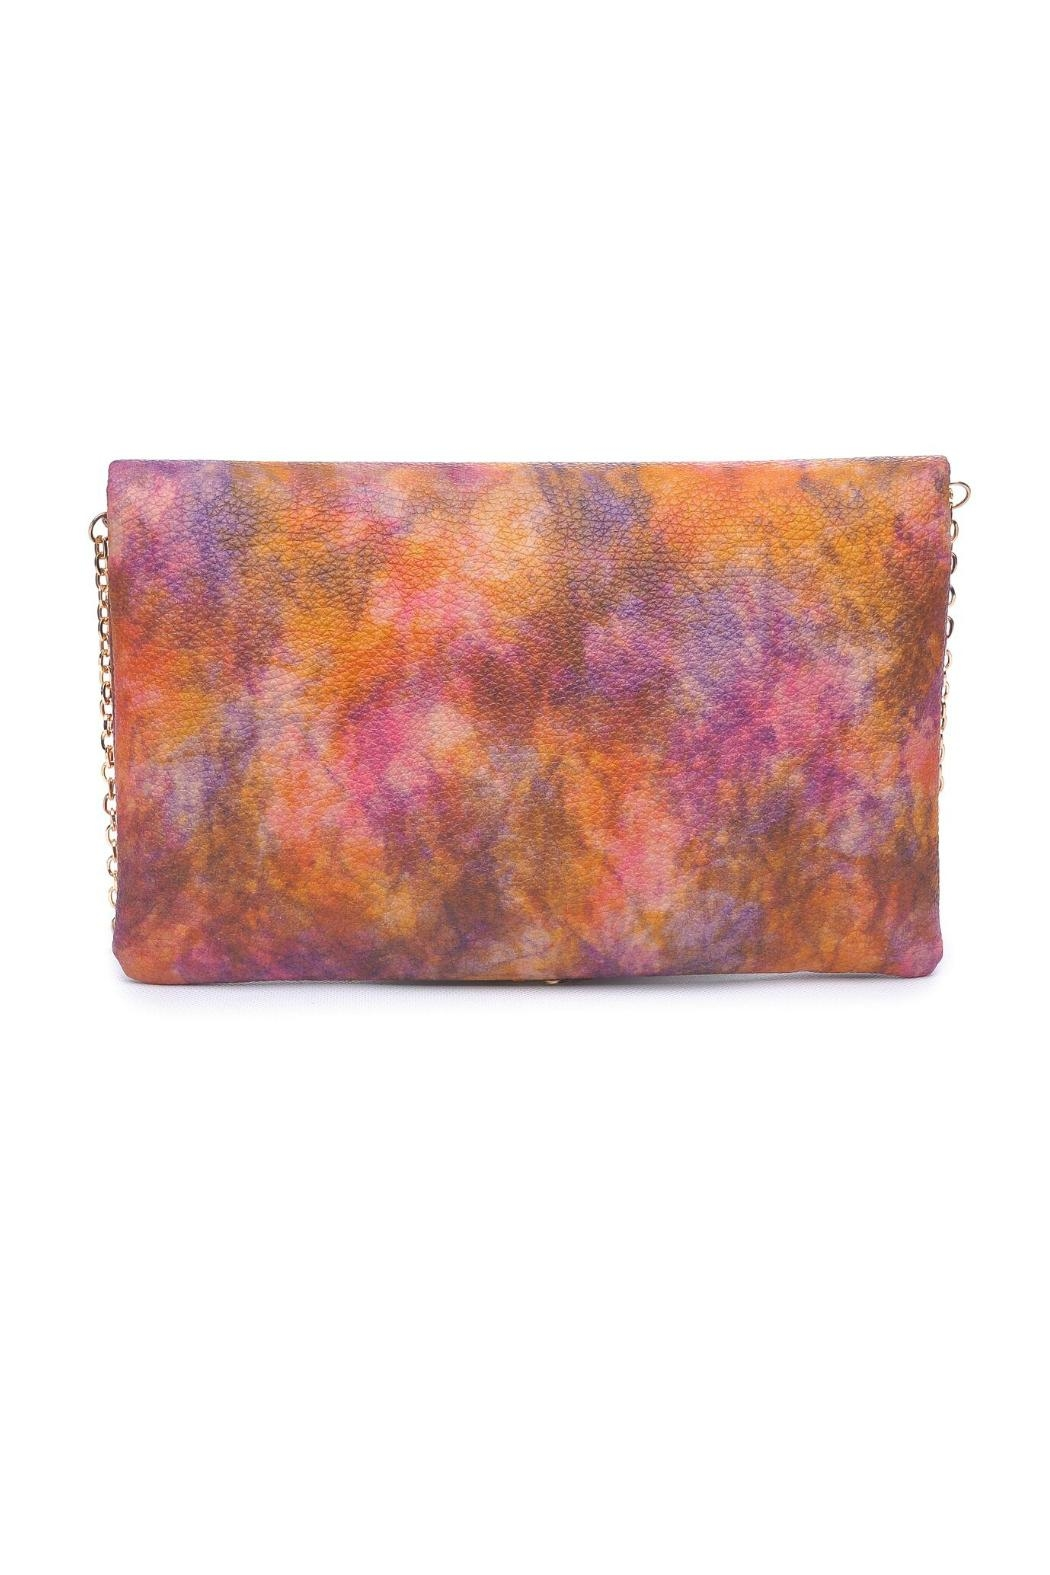 Urban Expressions Soleil Tassel Clutch - Front Full Image